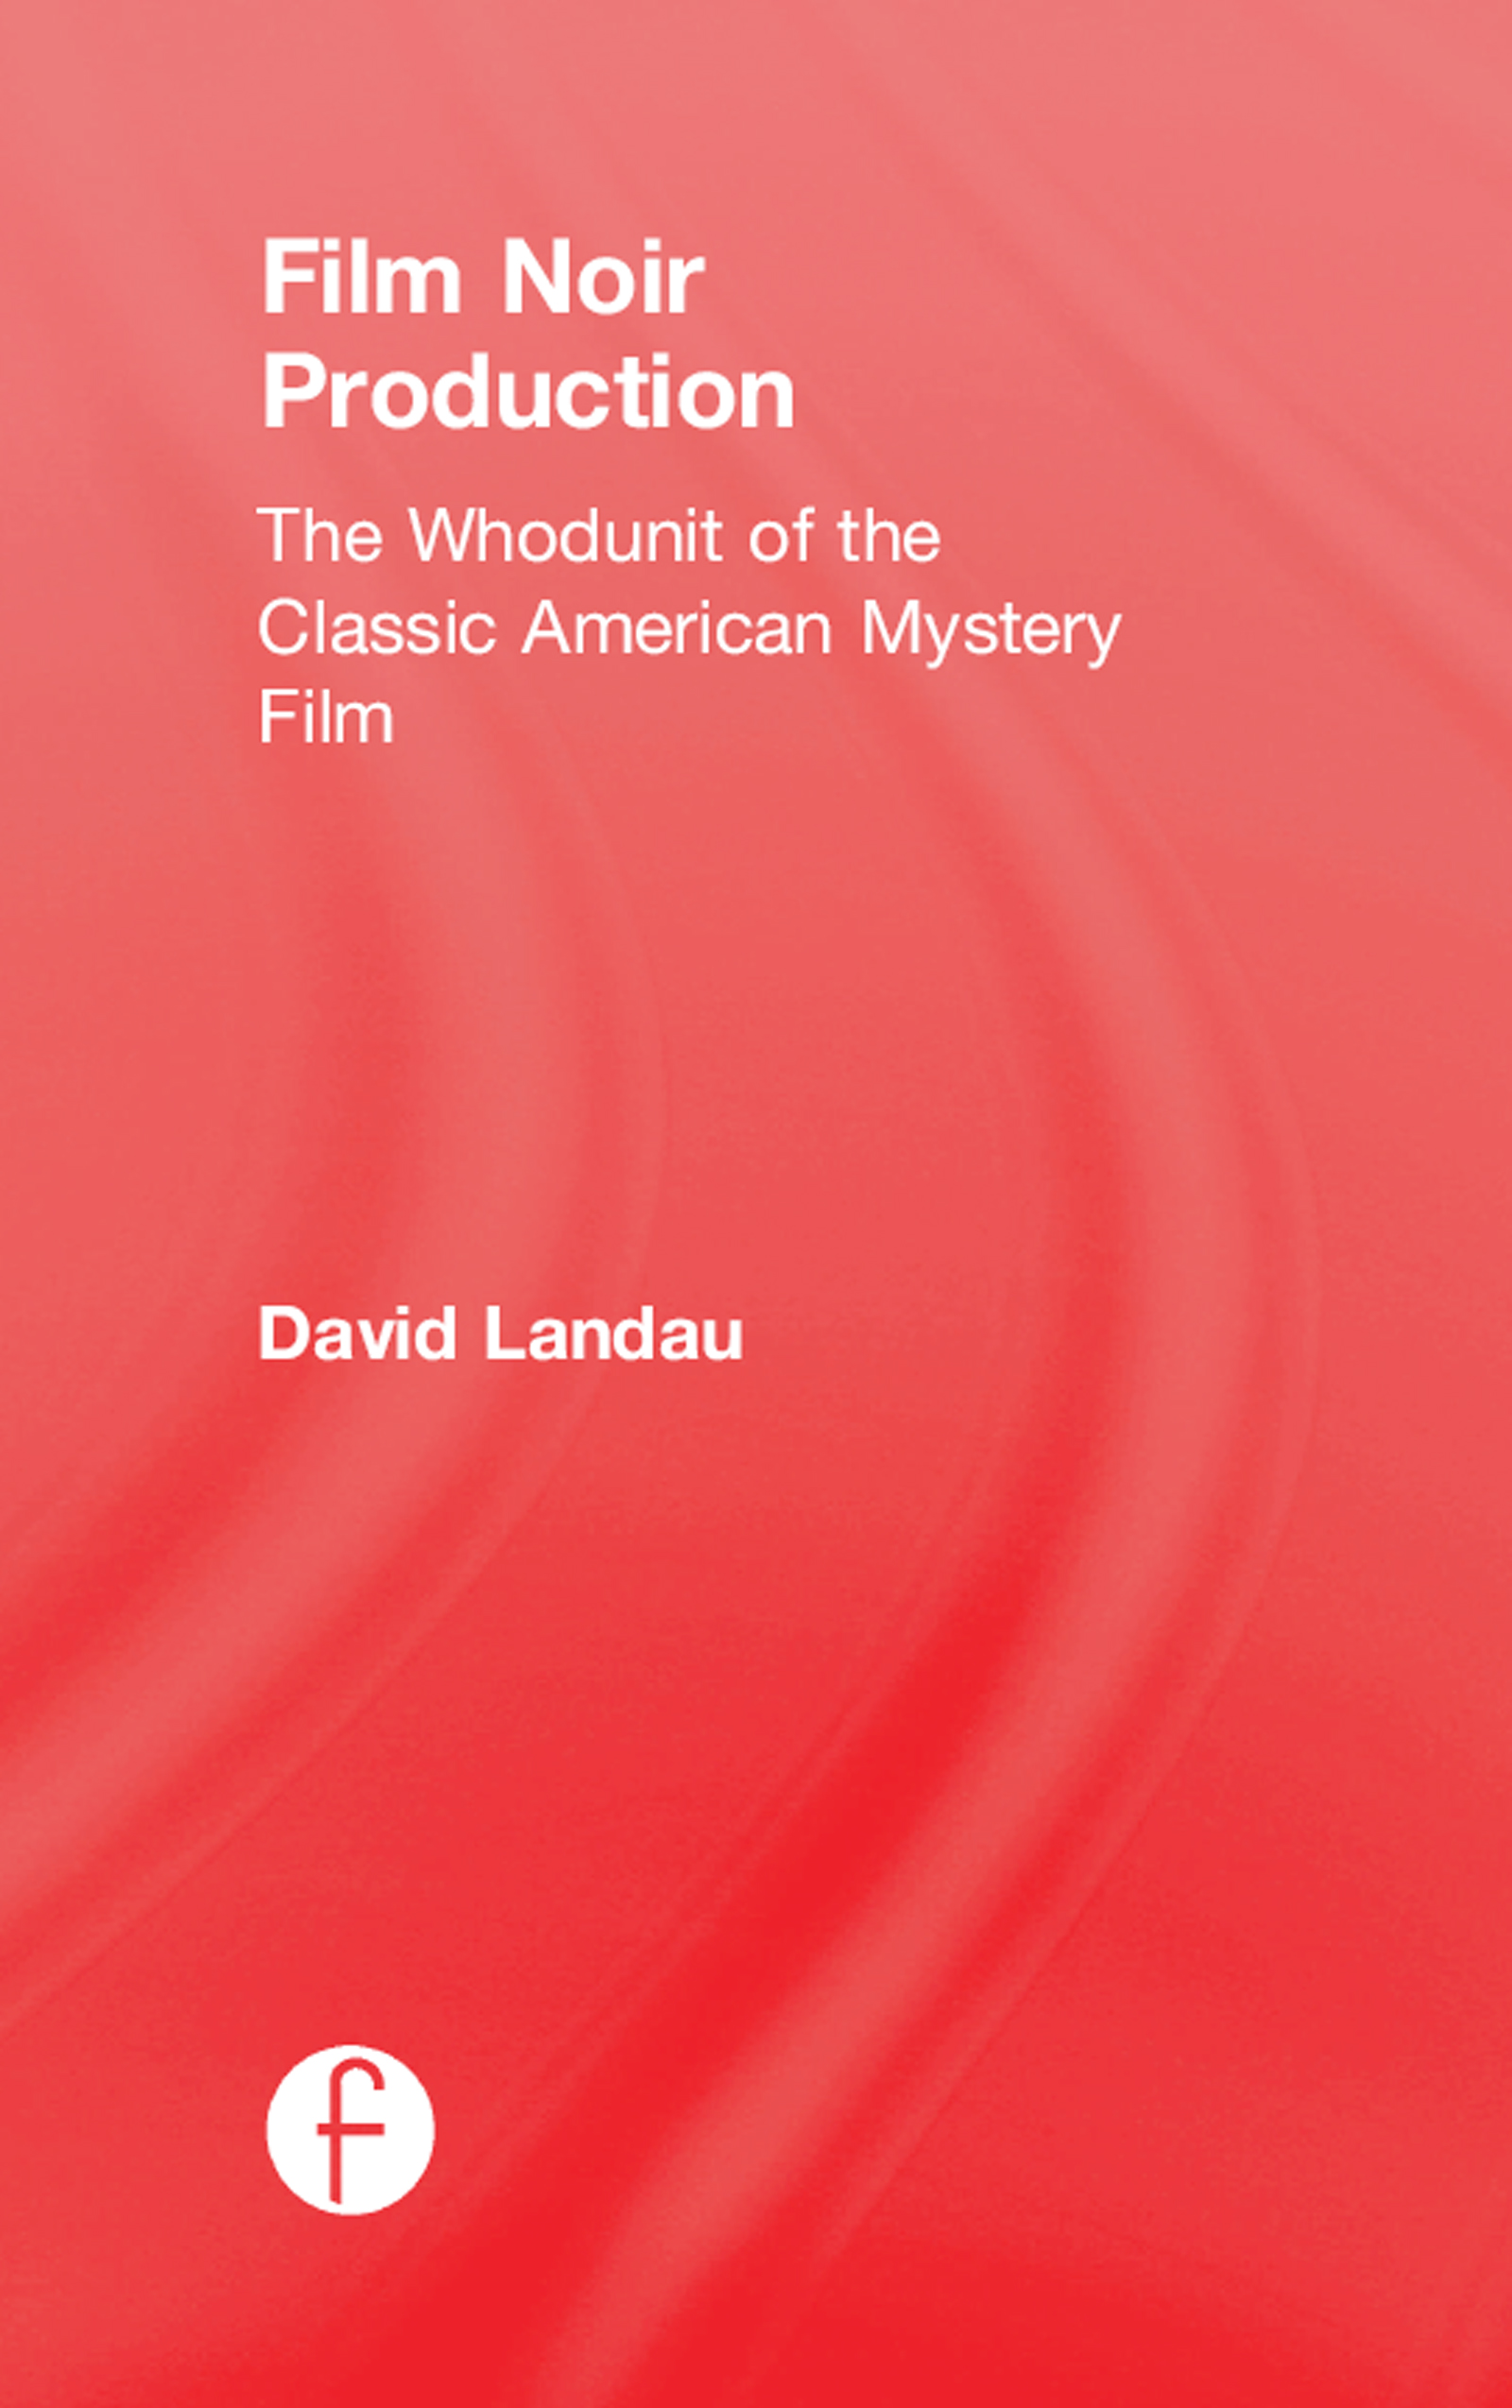 Film Noir Production: The Whodunit of the Classic American Mystery Film book cover